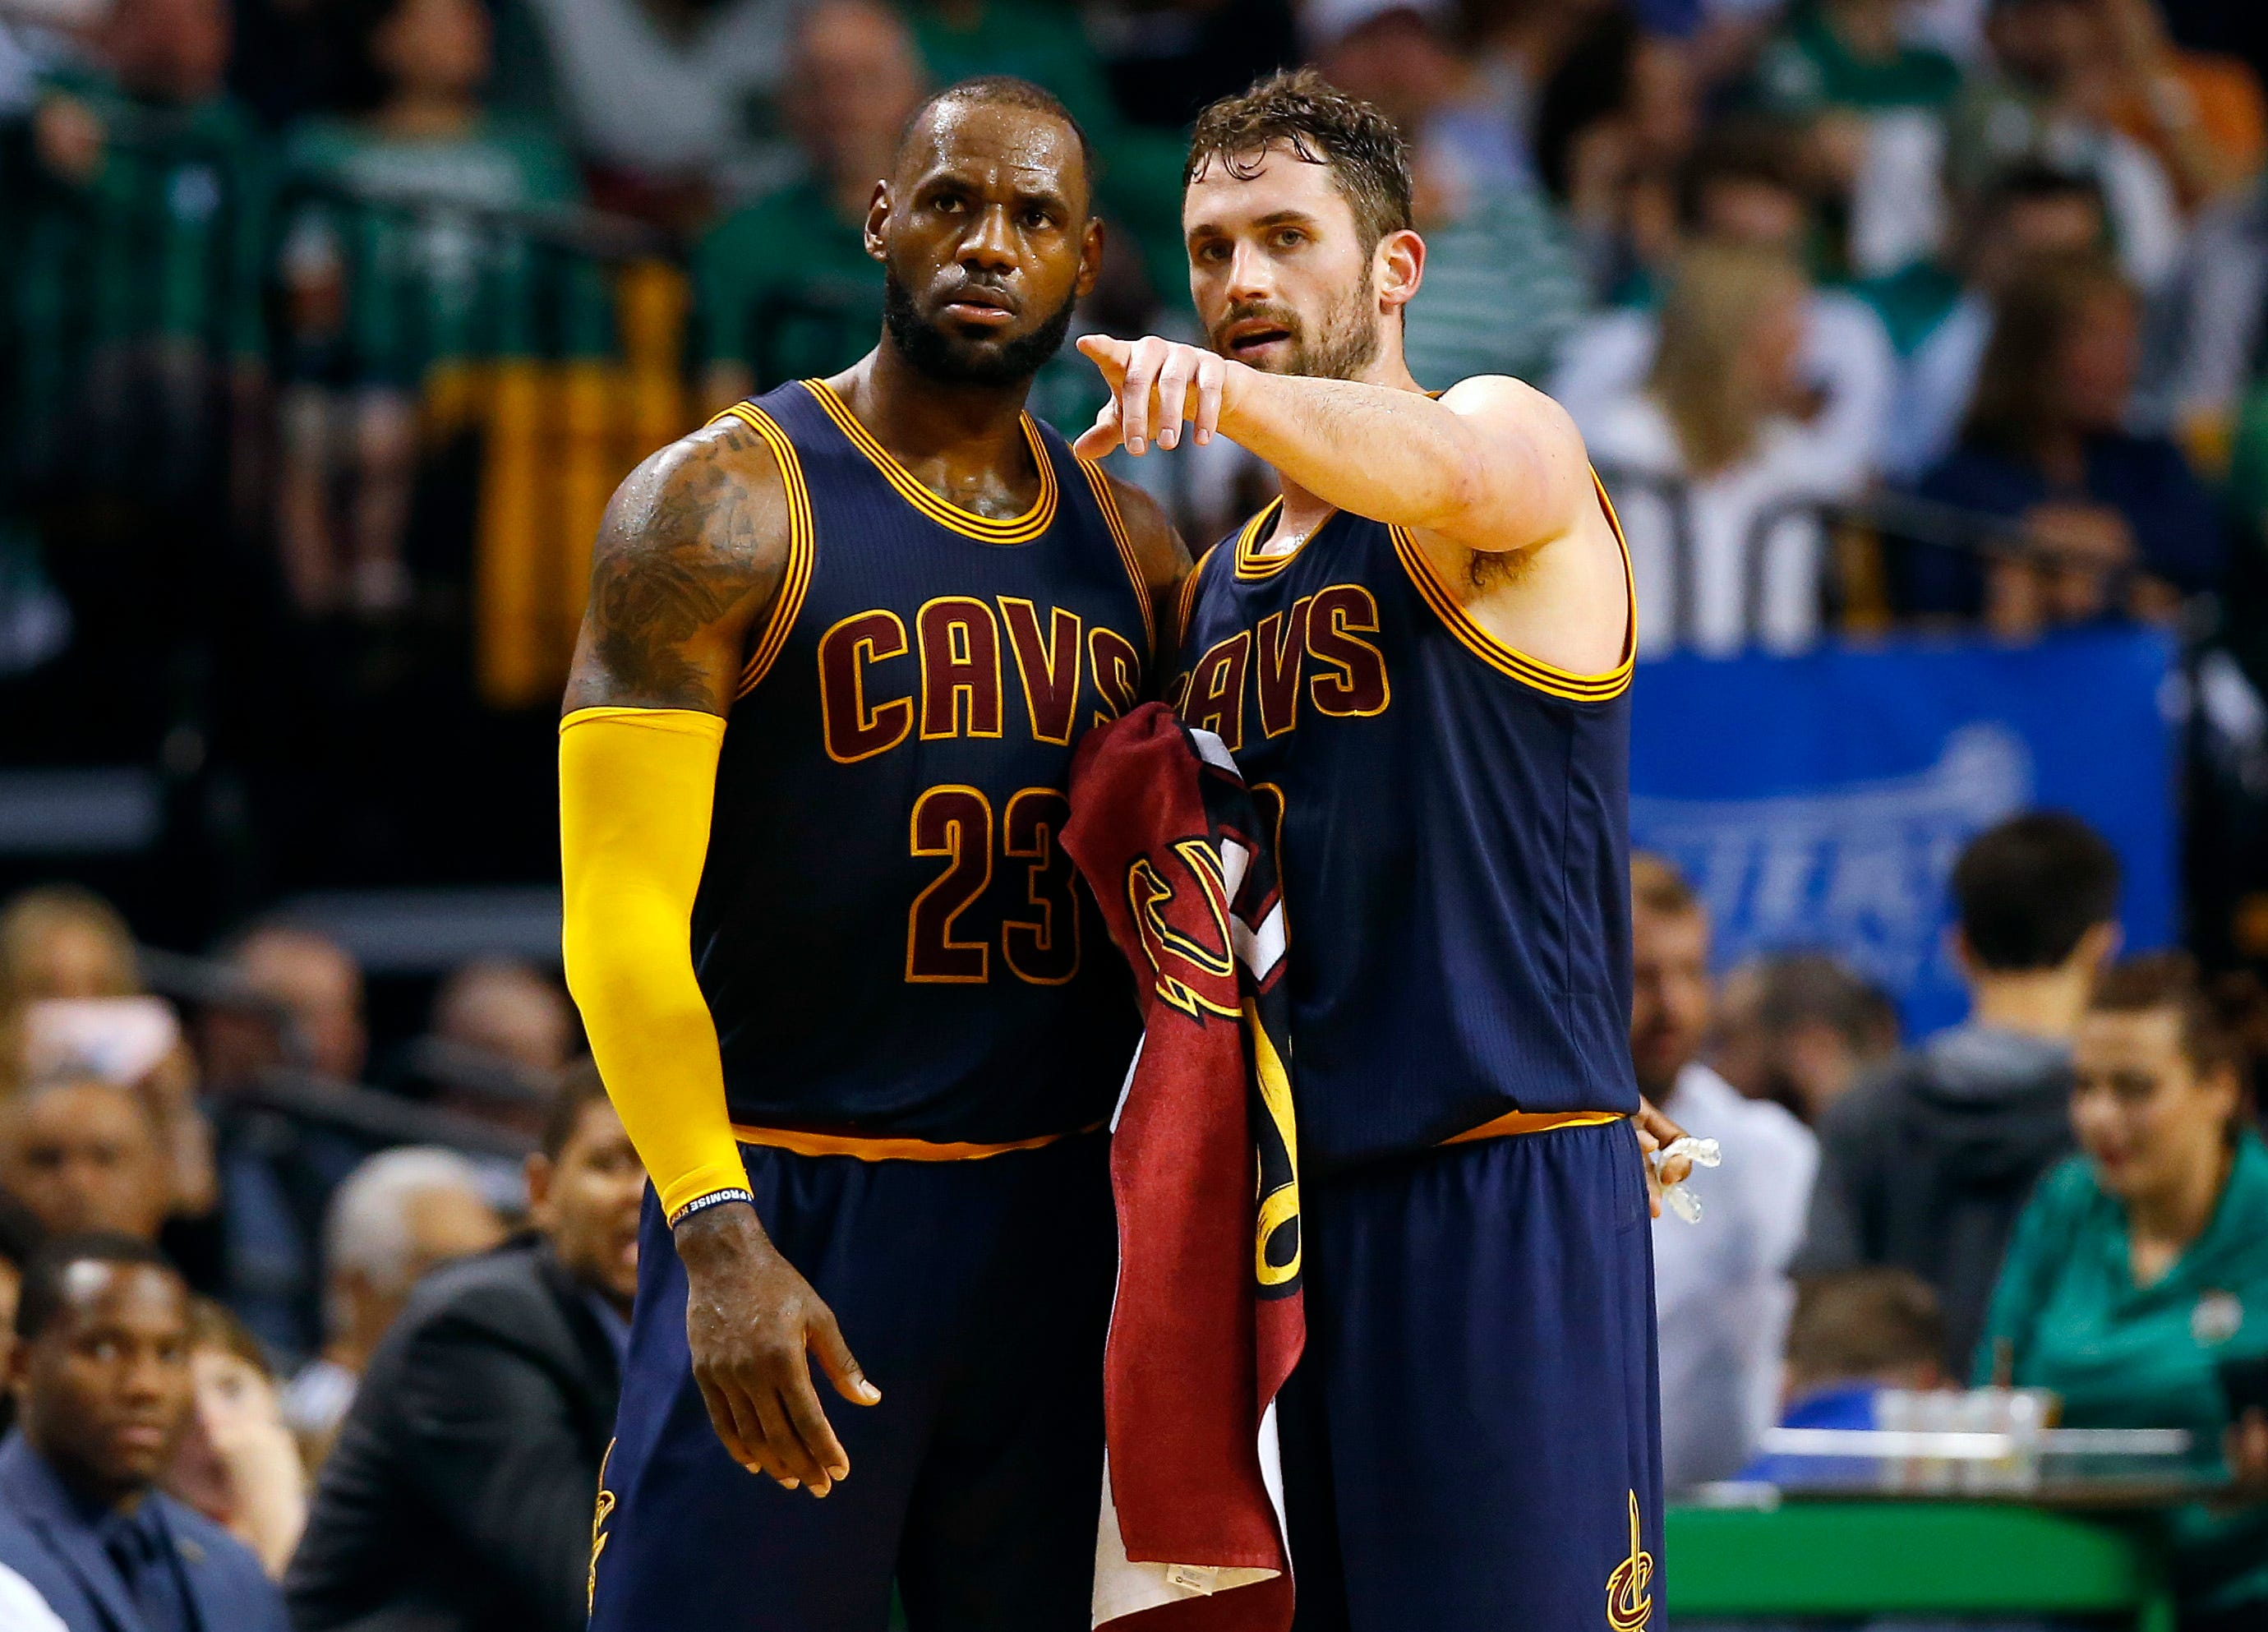 Kevin Love, underdog Cavs insist they have plenty of bite for Finals